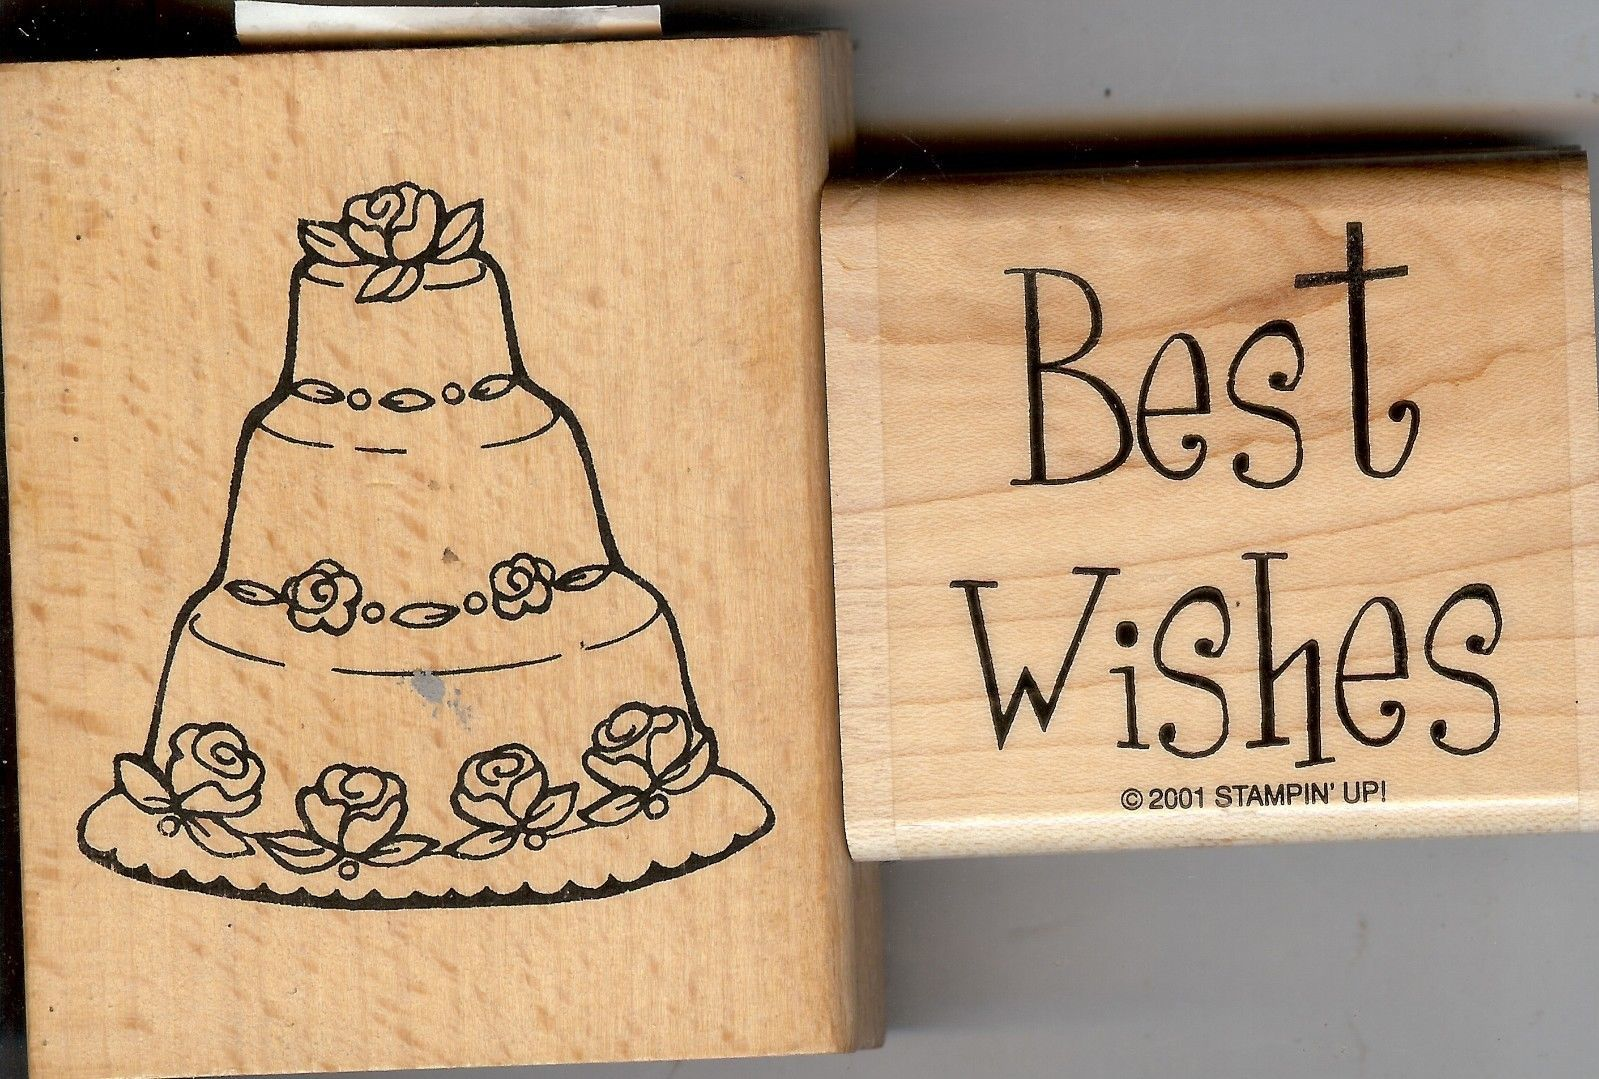 Lot of 2 Rubber Stamps D-001 & E-096 Best Wishes & Cake S42 - $6.89